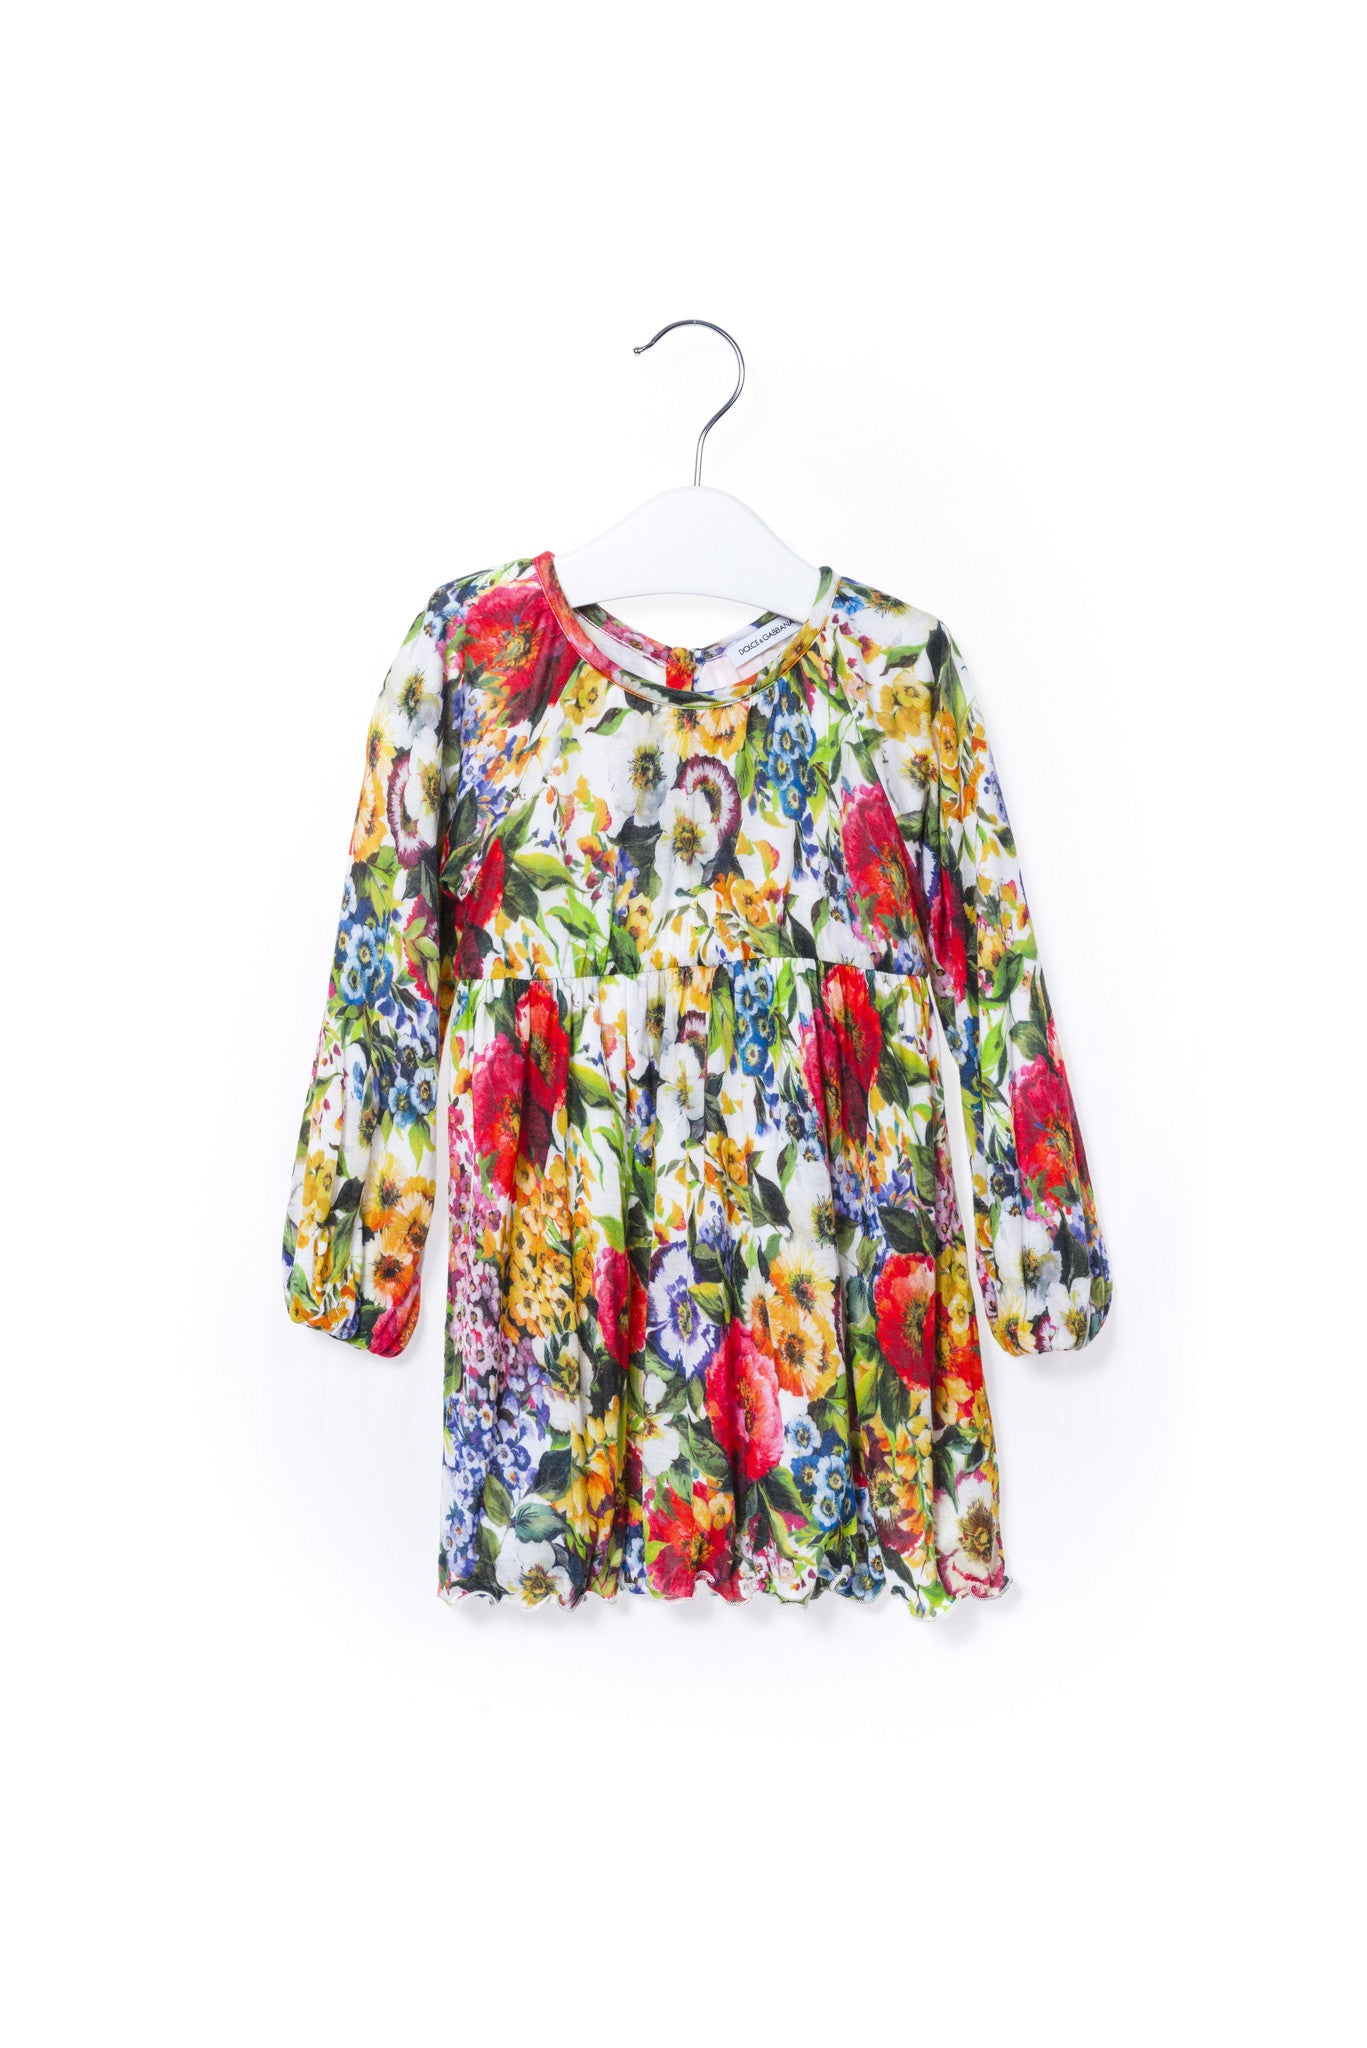 Dress 12-18M, Dolce & Gabbana at Retykle - Online Baby & Kids Clothing Up to 90% Off